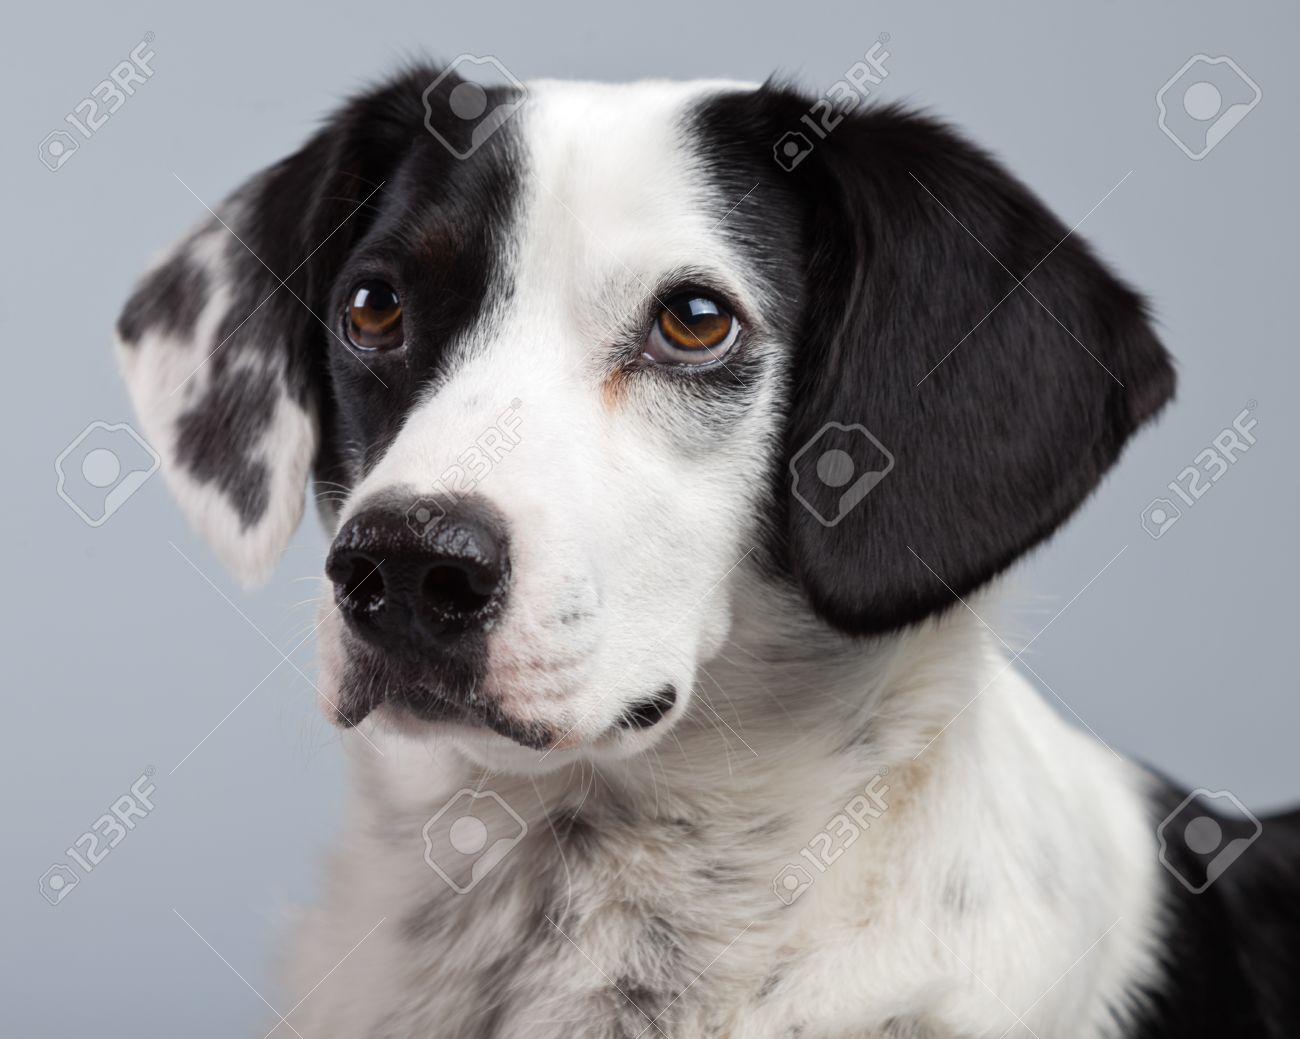 Mixed breed black and white spotted dog isolated against grey background light brown eyes